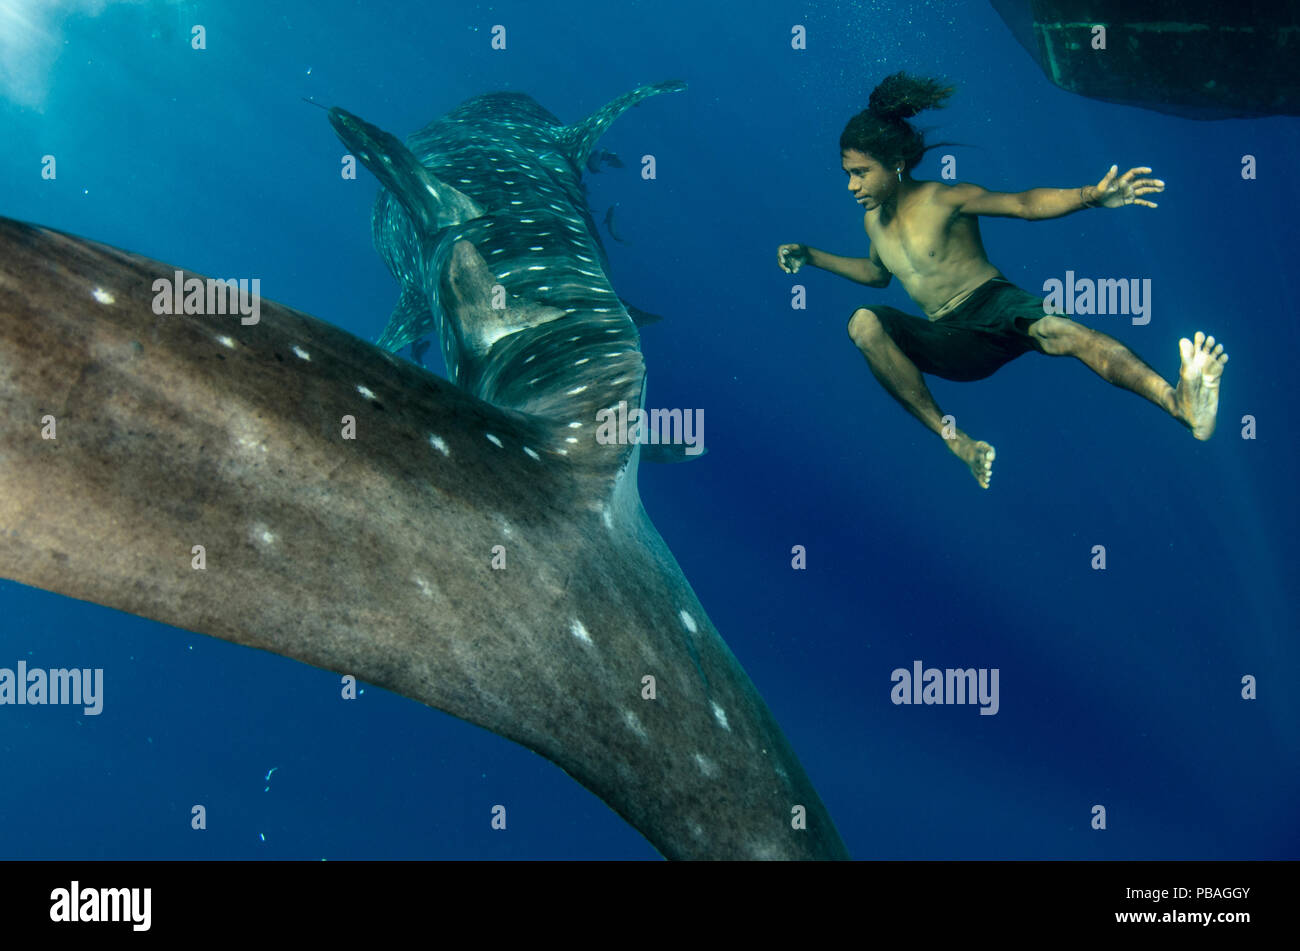 Whale Shark (Rhincodon typus) and local fisherman freediving, Cenderawasih Bay, West Papua, Indonesia. Winner of the Man and Nature Portfolio Award in the Terre Sauvage Nature Images Awards Competition 2015. Stock Photo